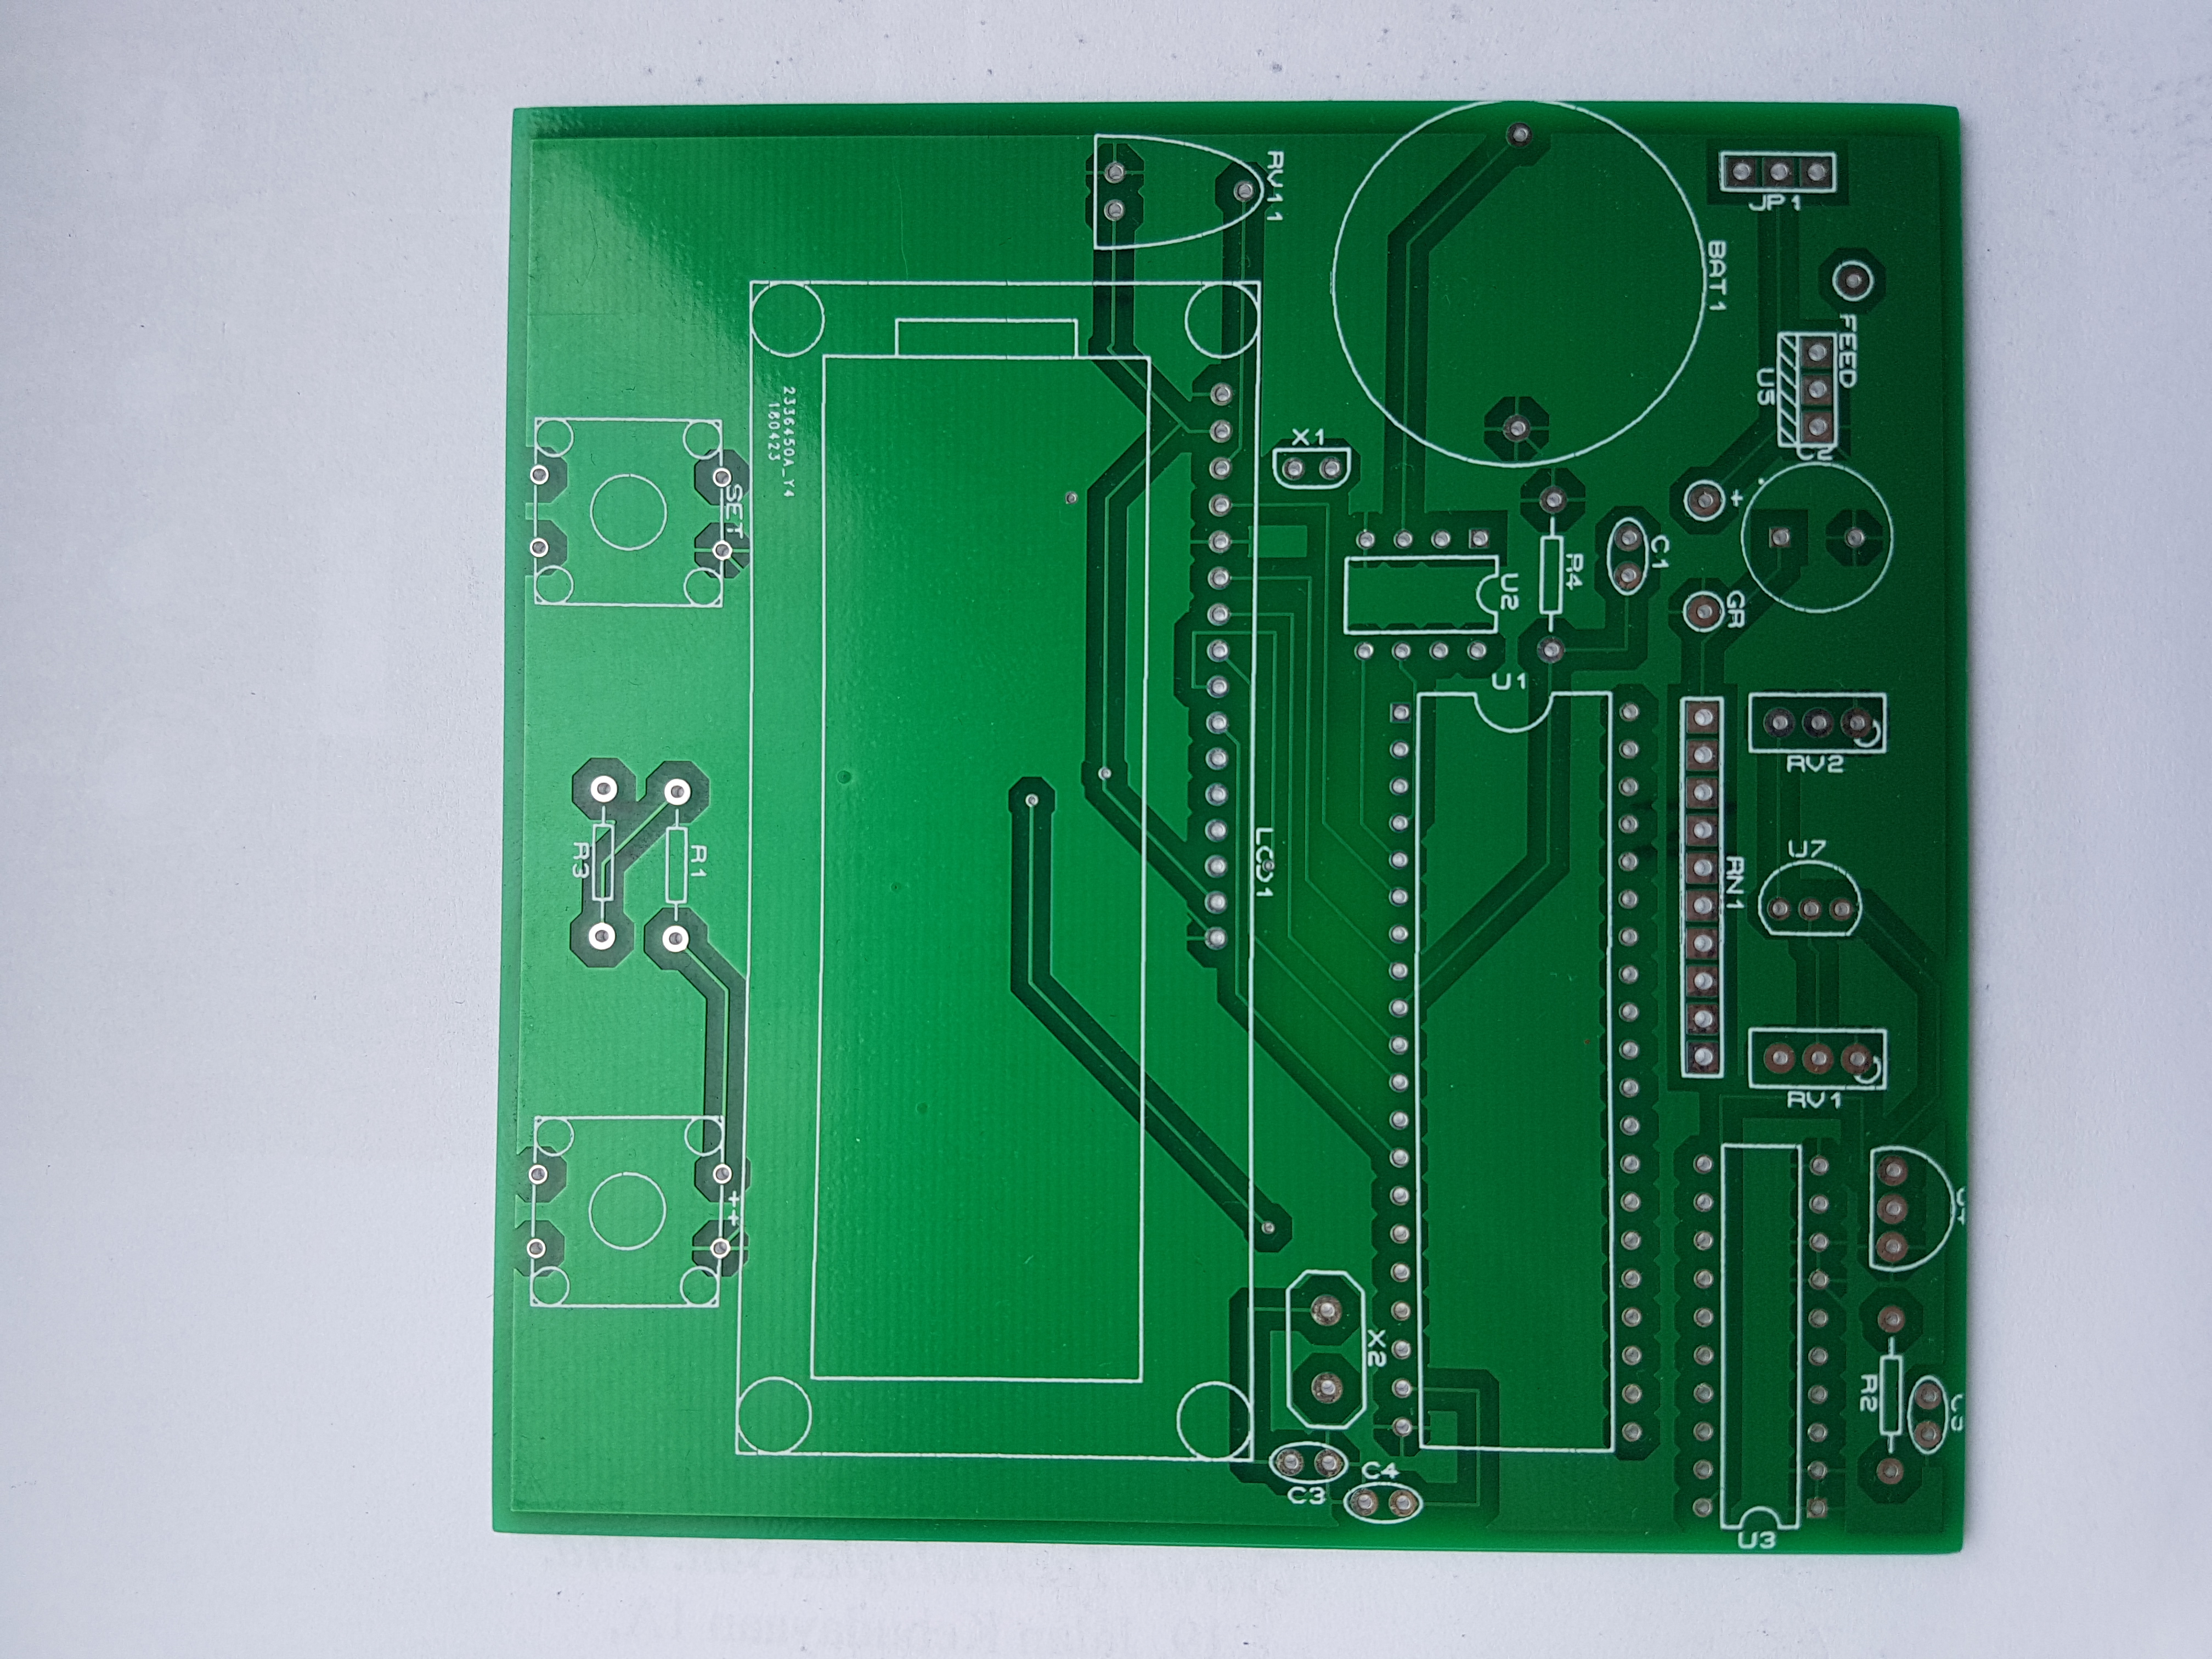 pcb manufacturing sites work in progress sell buy electronicsBoard Fast Prototype Buy Timer Circuit Boardaluminum Enclosure #18